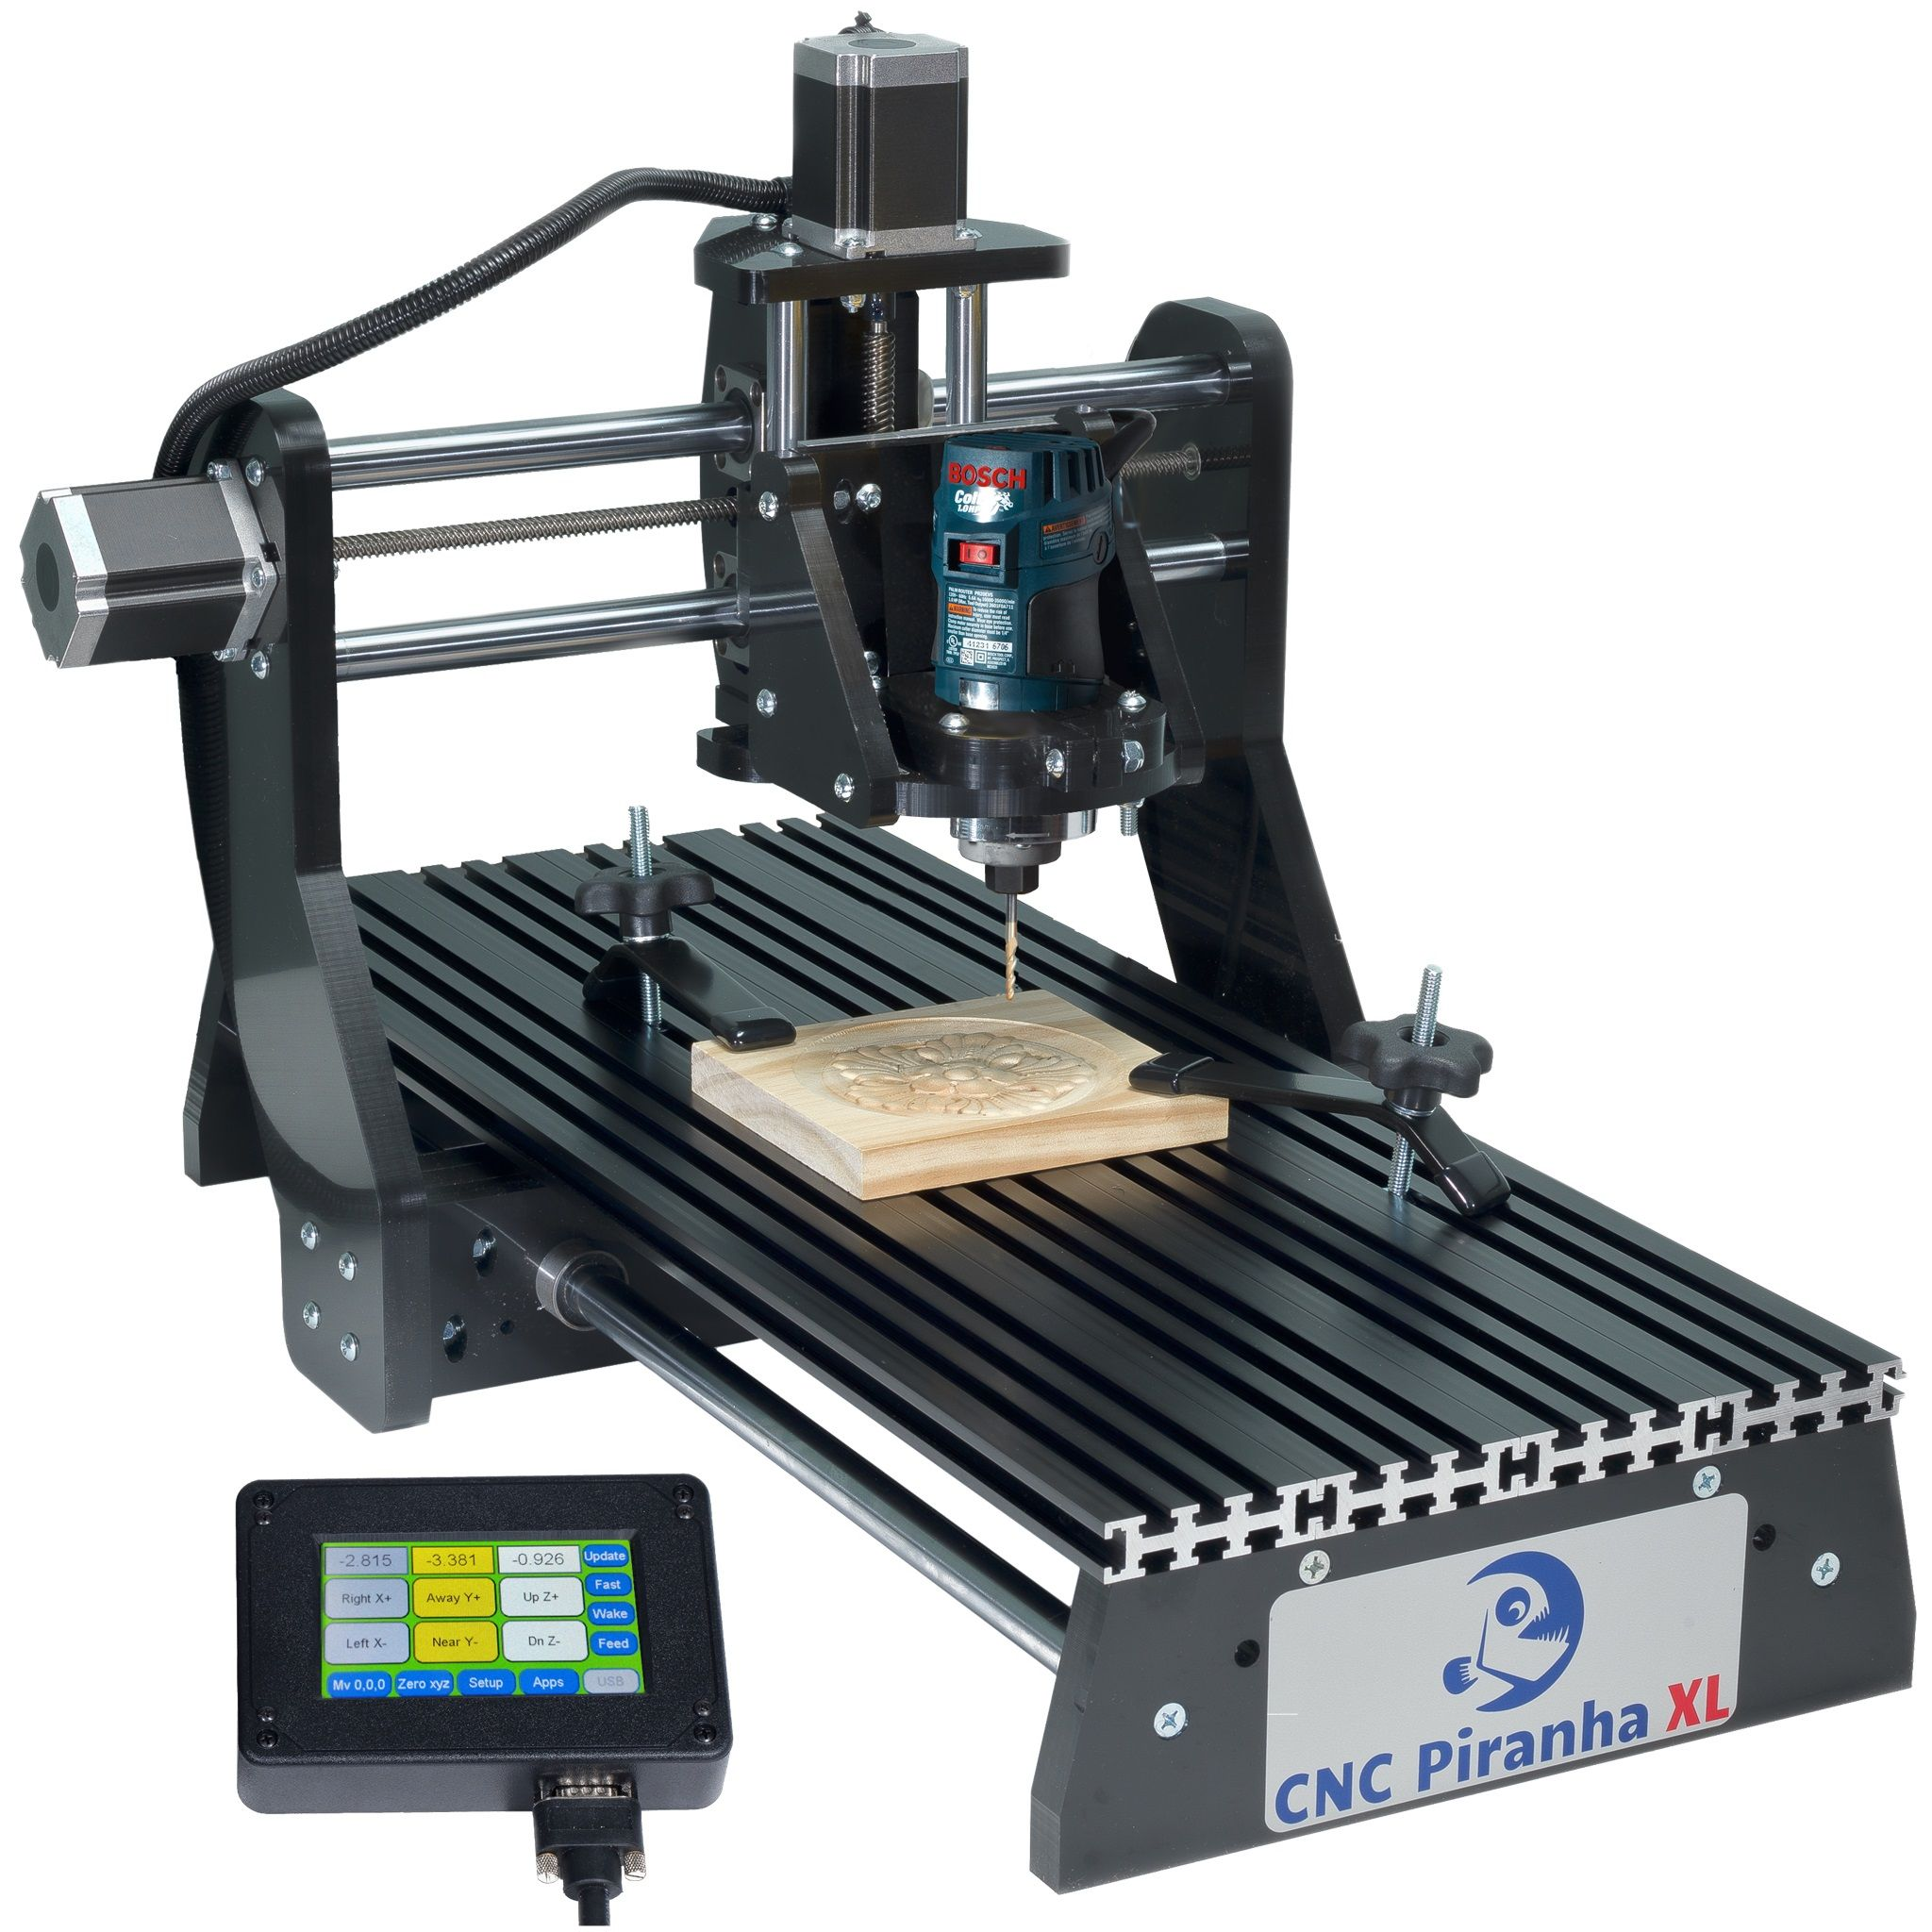 CNC Piranha XL Master Set by Next Wave Automation in 2019